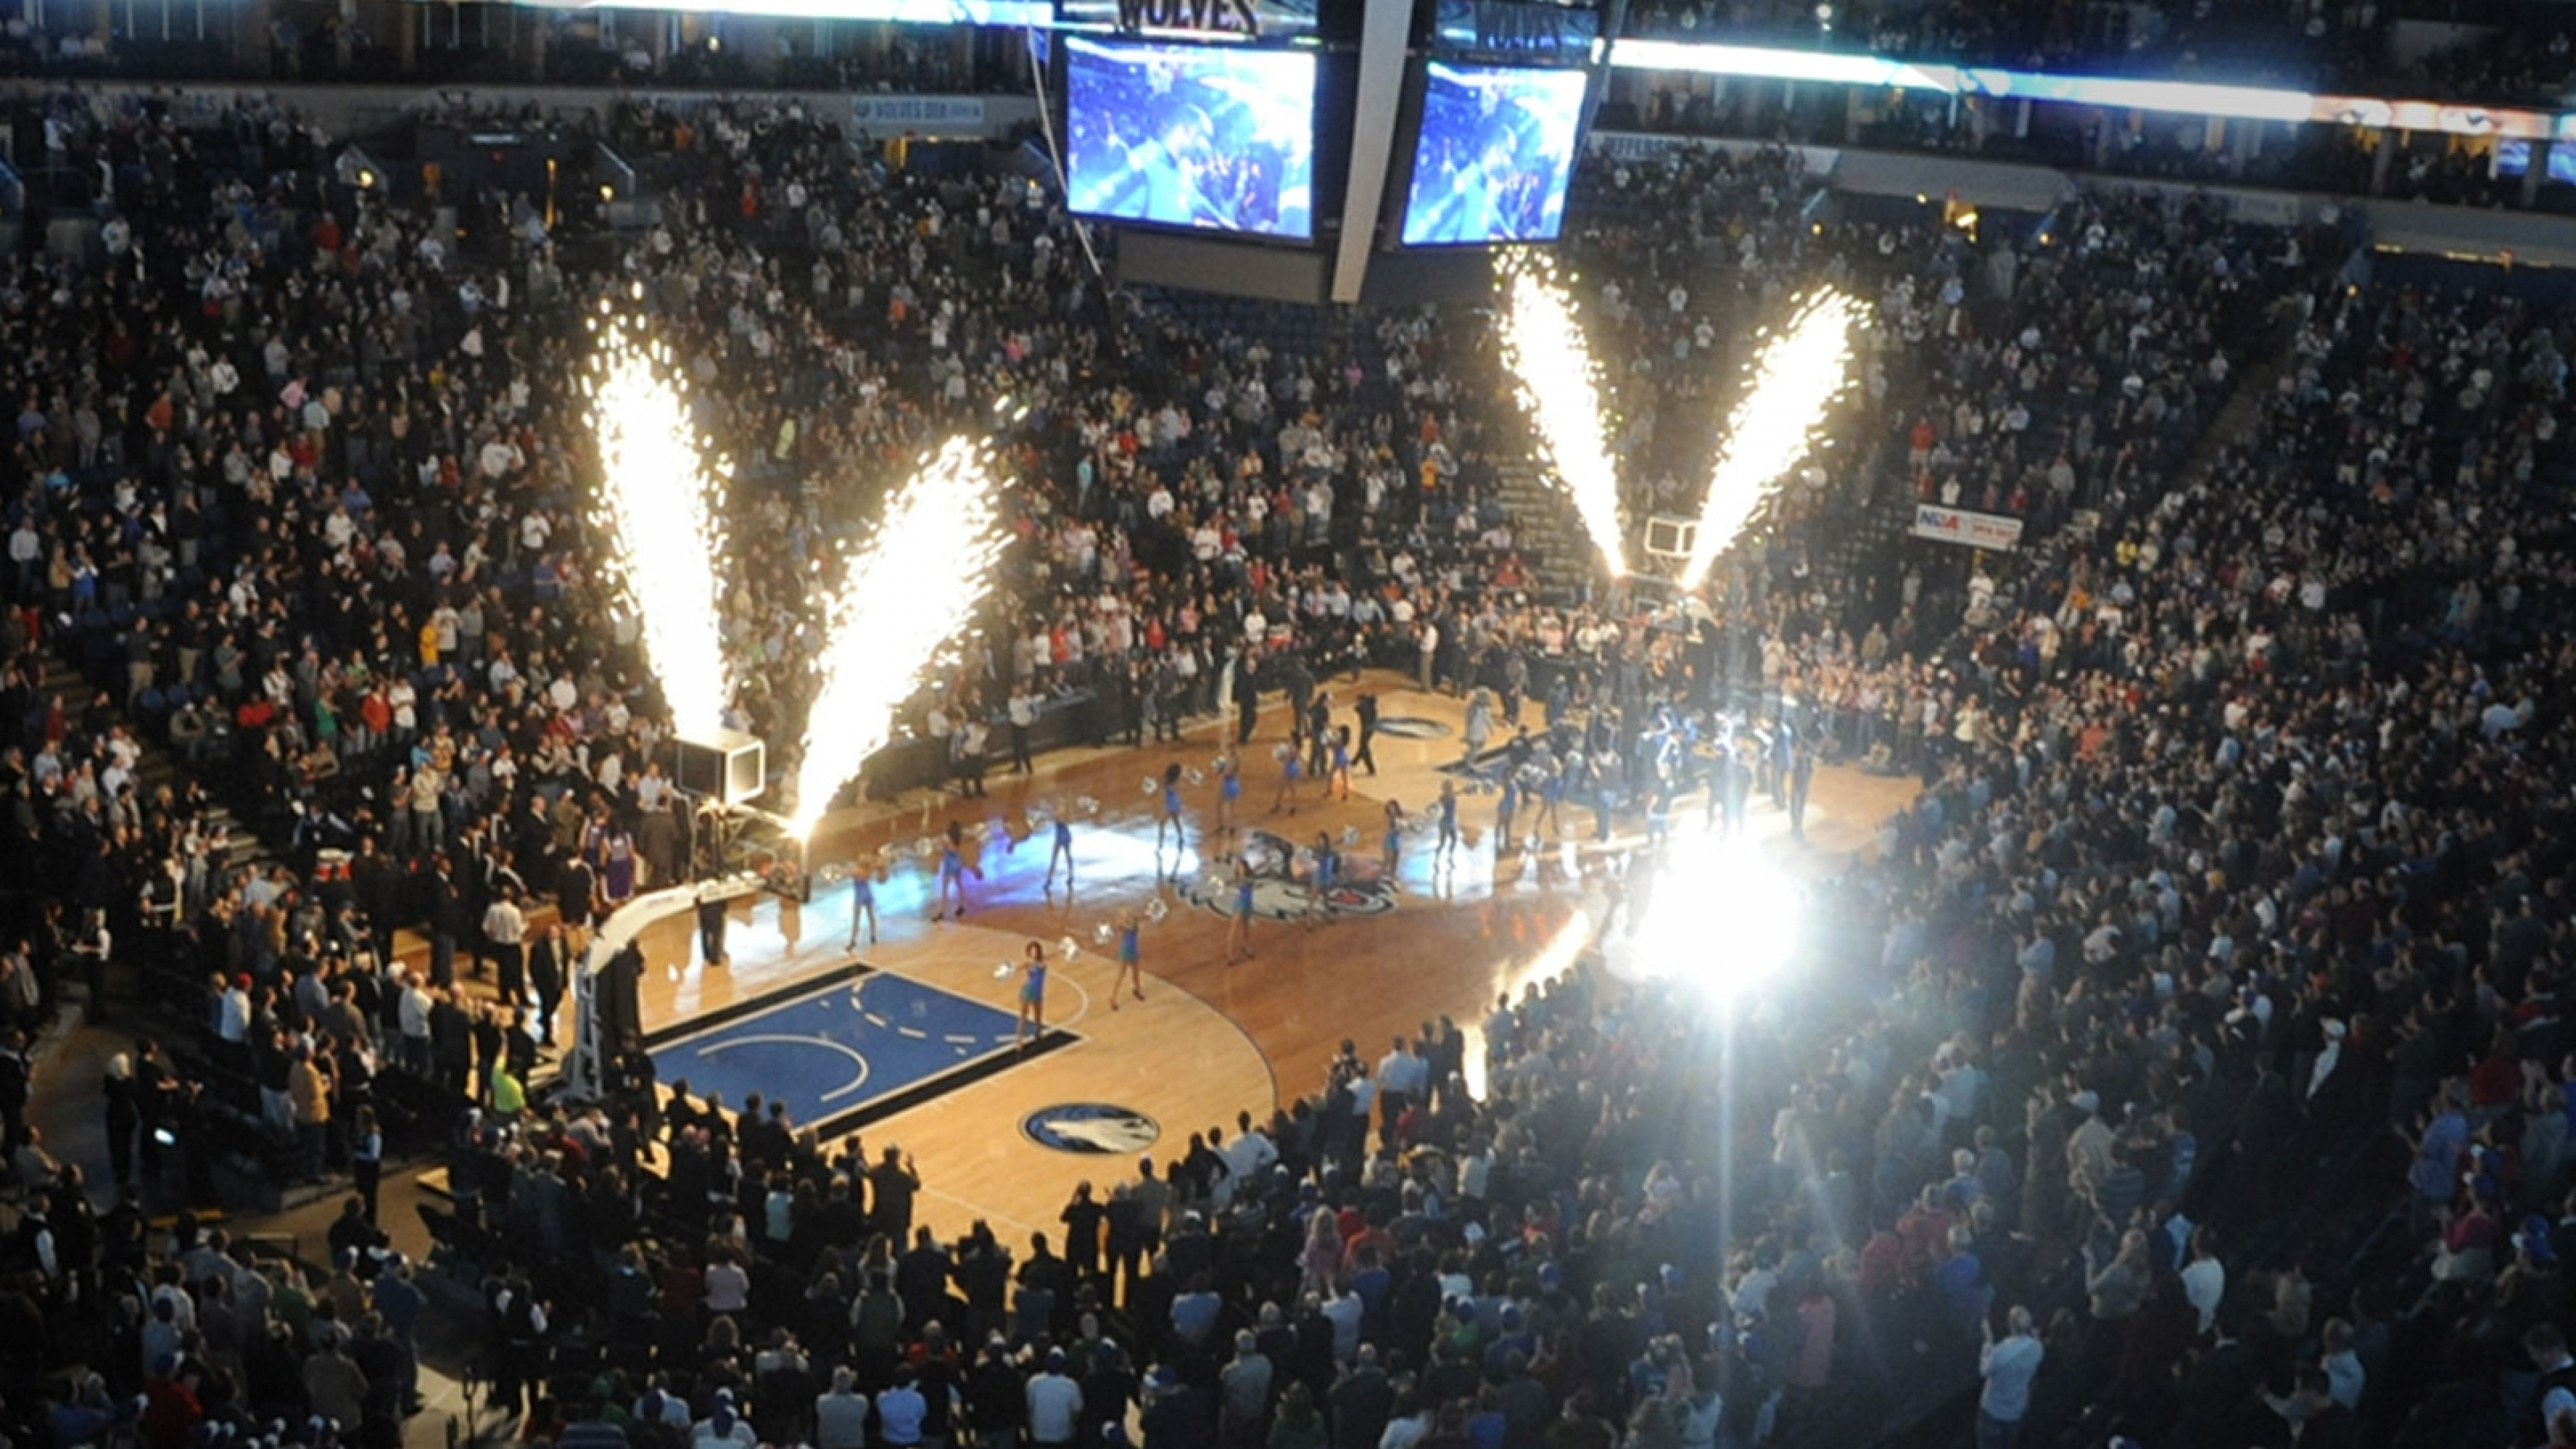 3840x2160  Wallpaper minnesota timberwolves, basketball, spectators,  fireworks